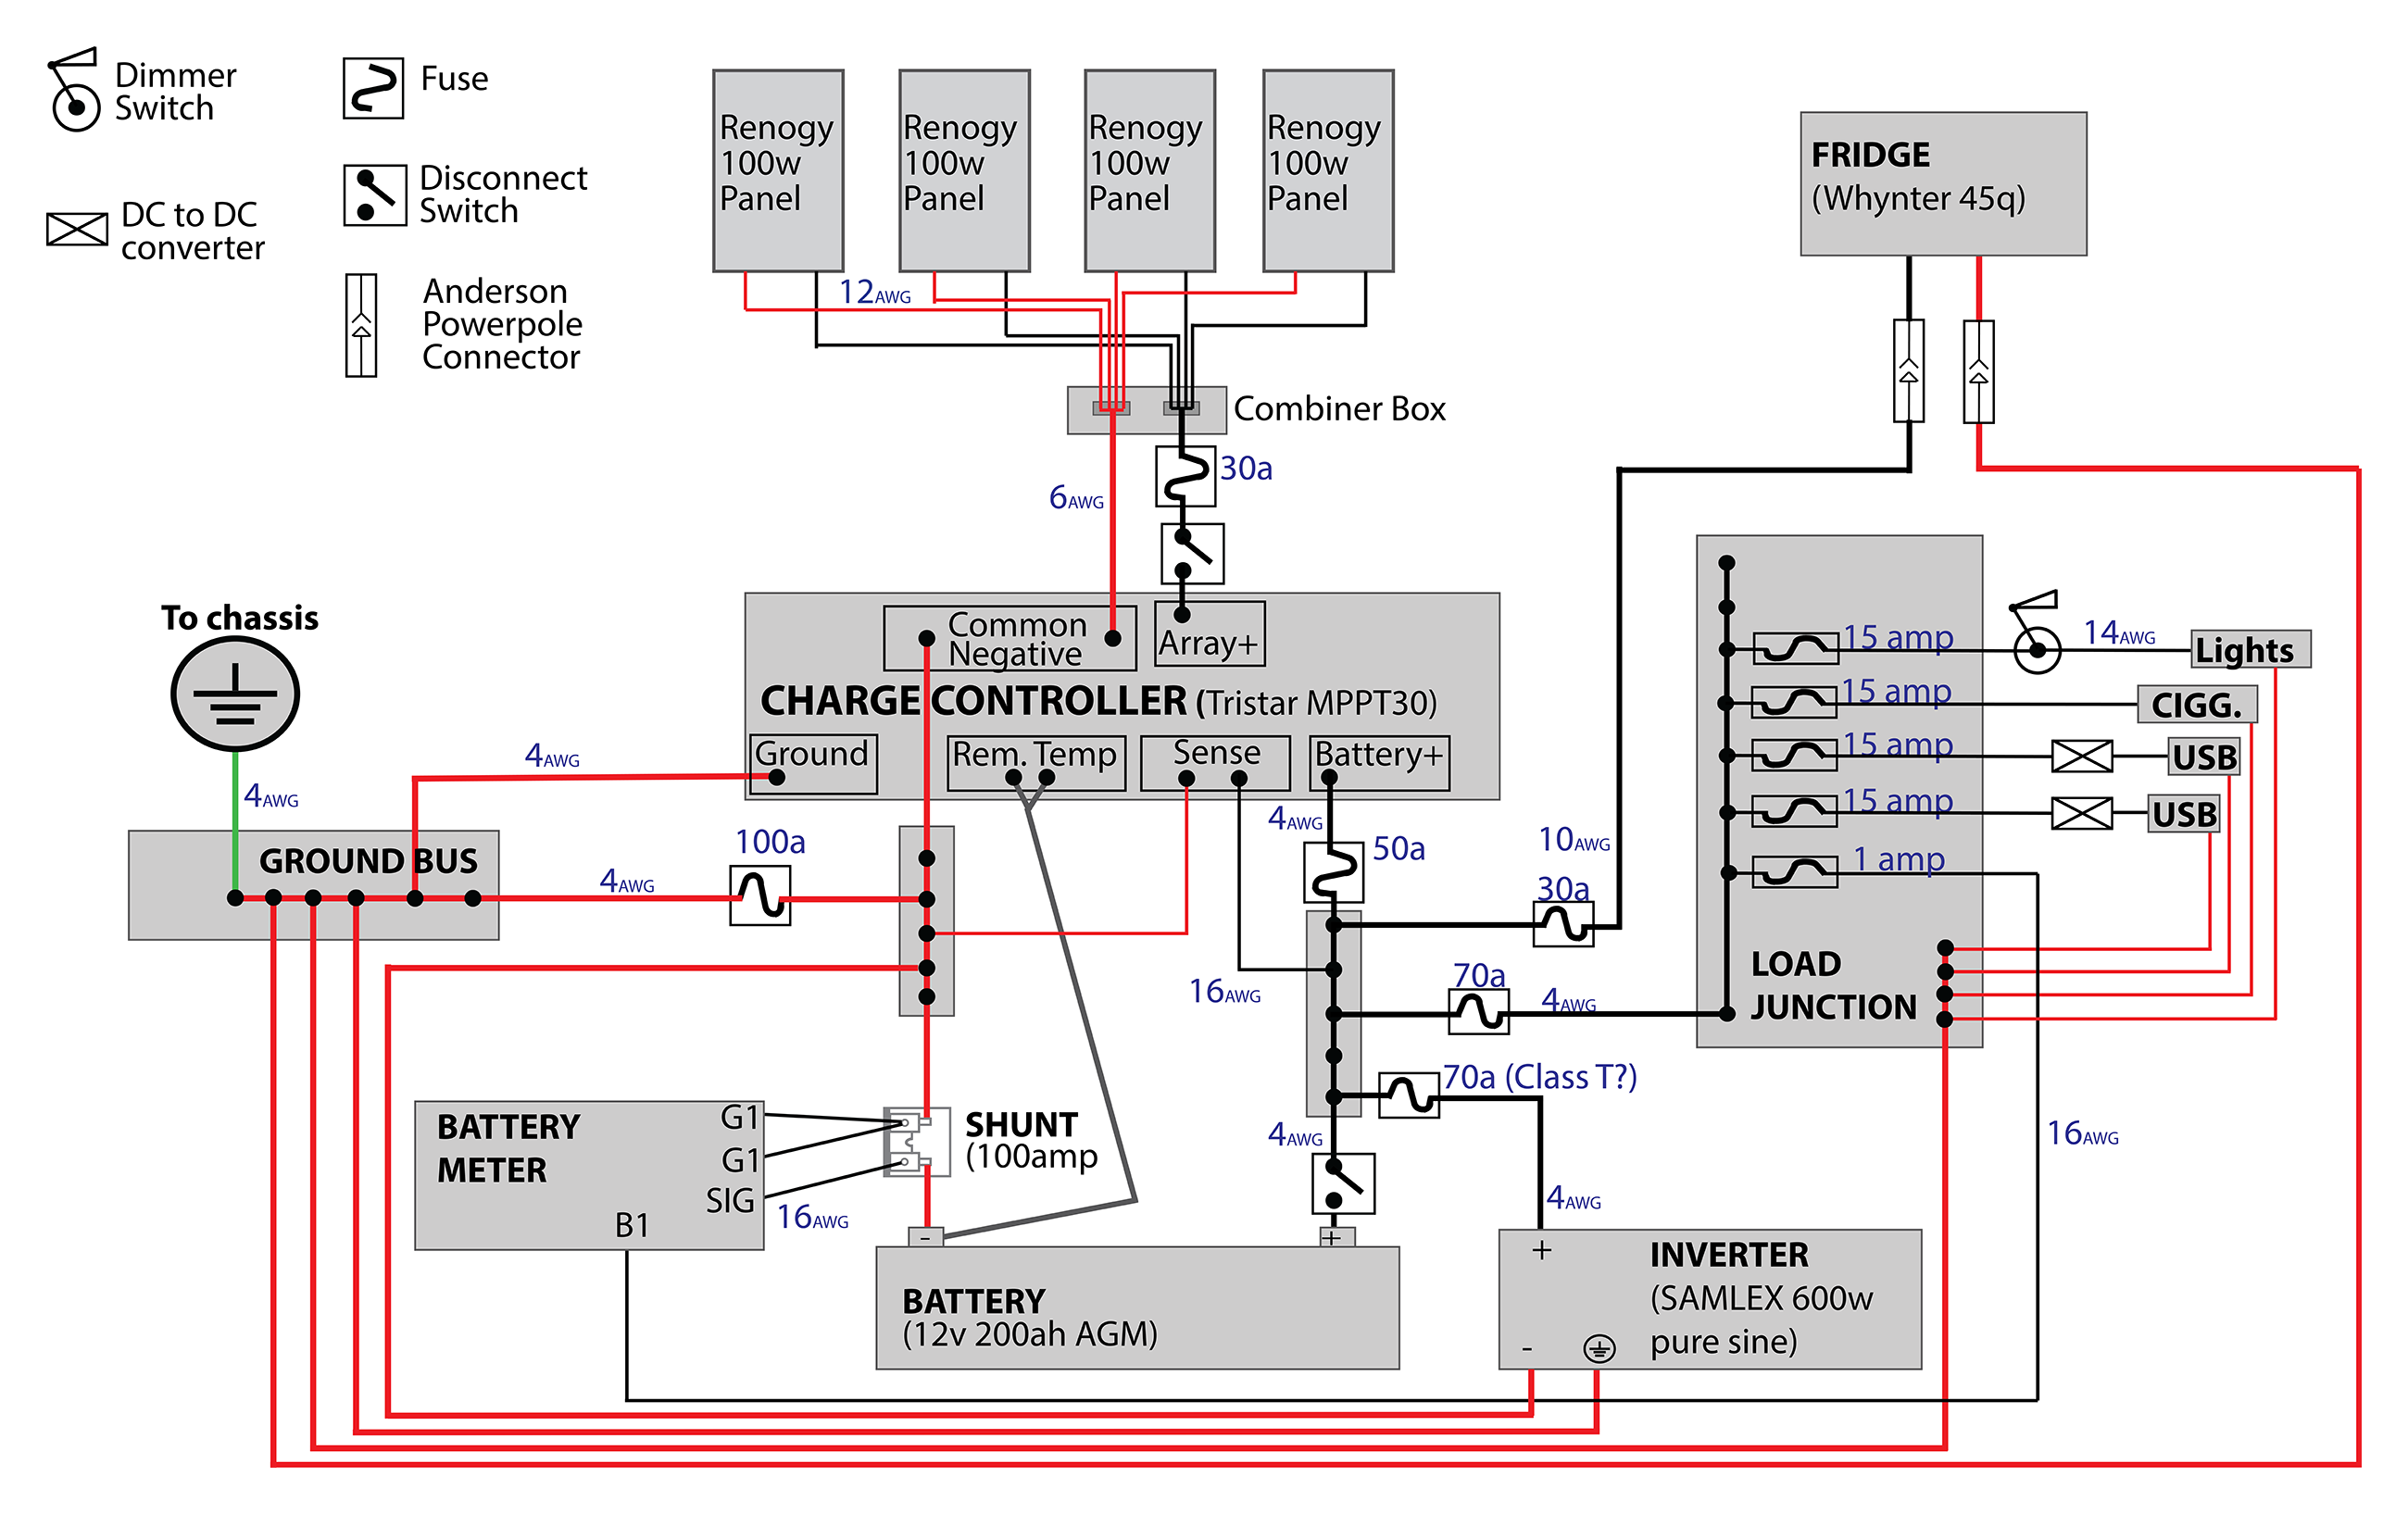 Planning A Electrical Circuit My System Design Input Please Vandwellers Here Is The Wiring Diagram